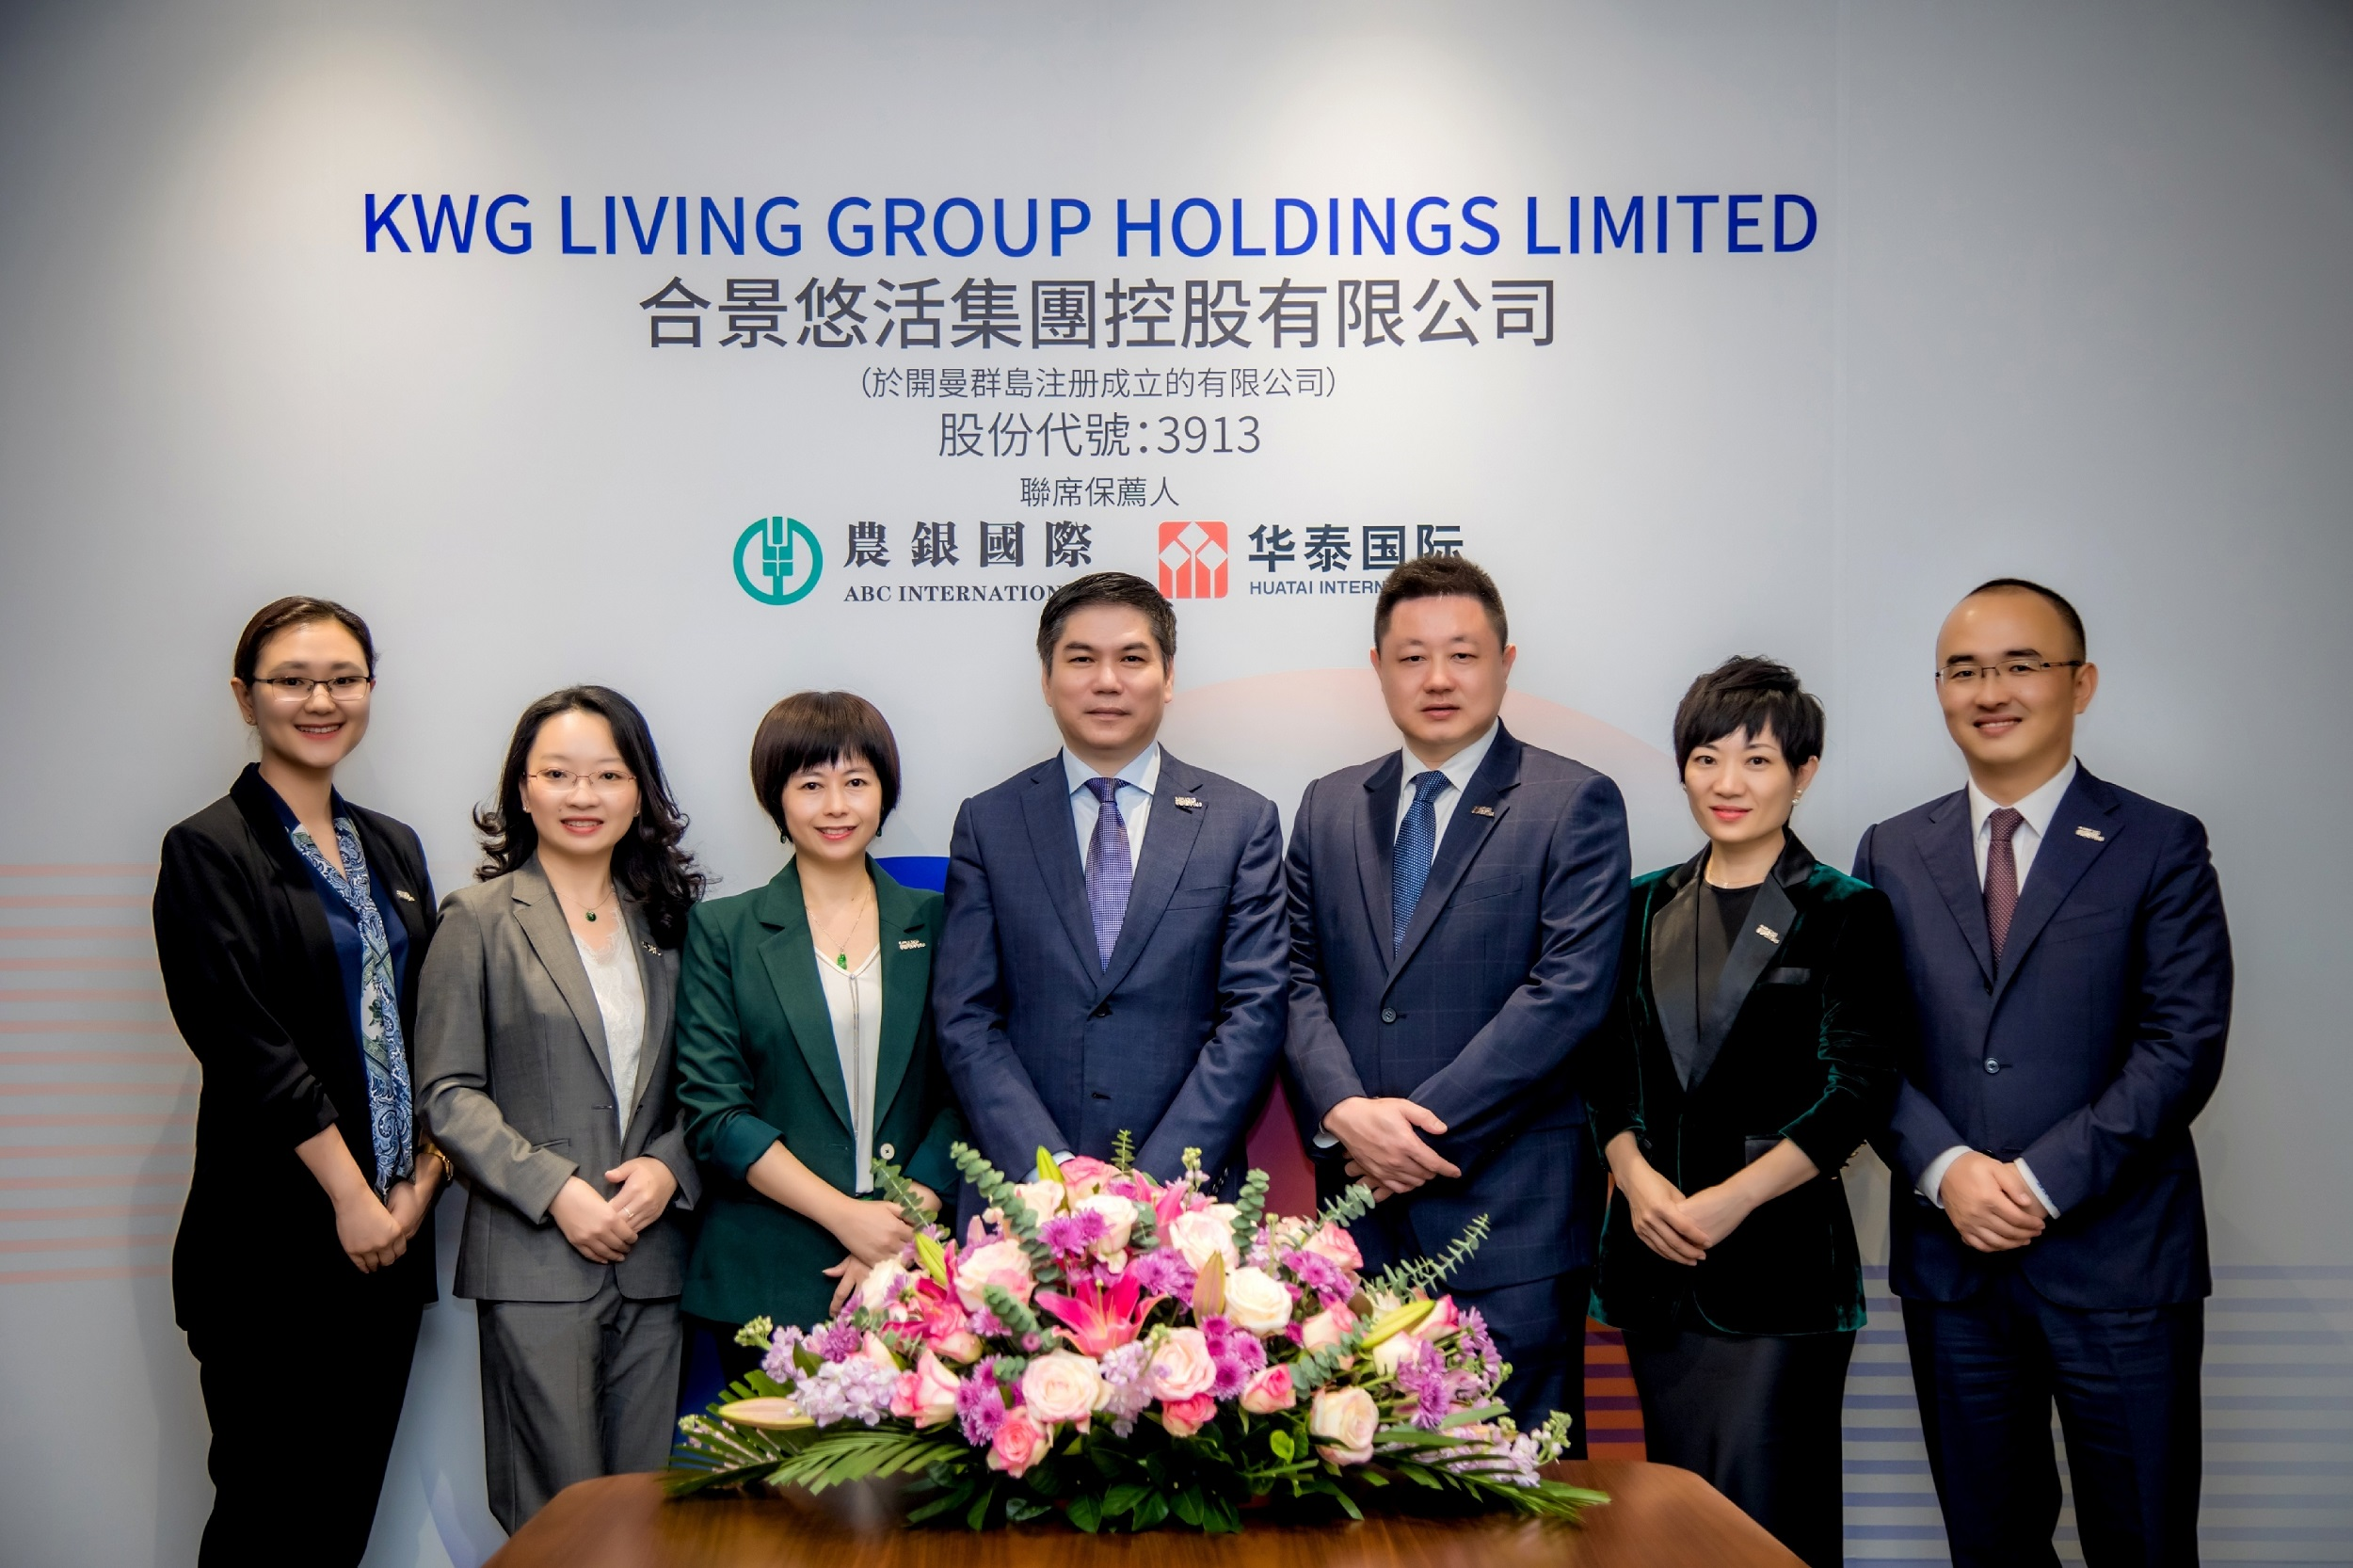 KWG Living Announces Proposed Listing on the Main Board of the HKSE